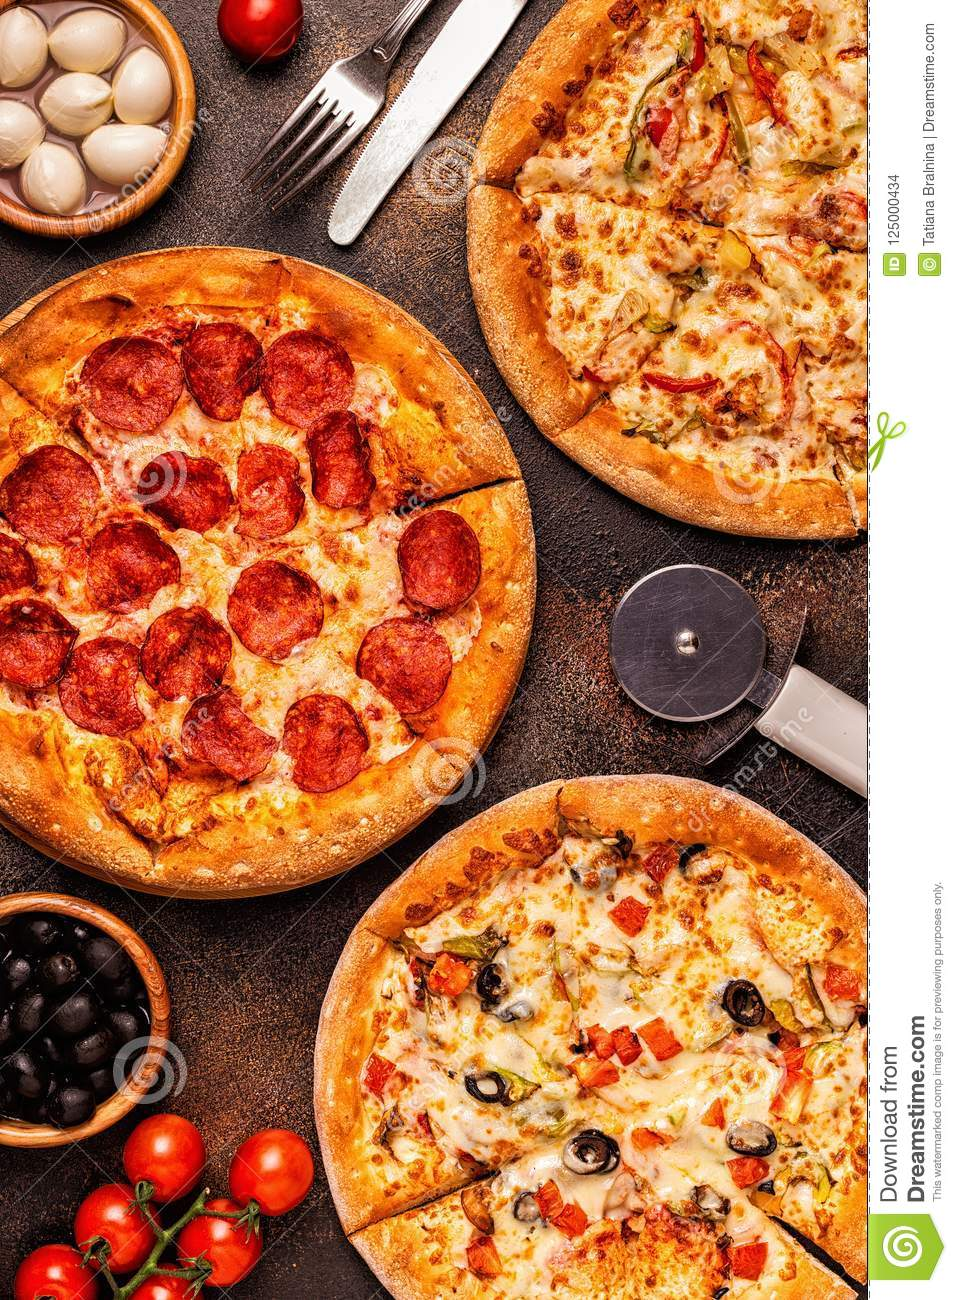 Set of different pizzas - pepperoni, vegetarian, chicken with vegetables